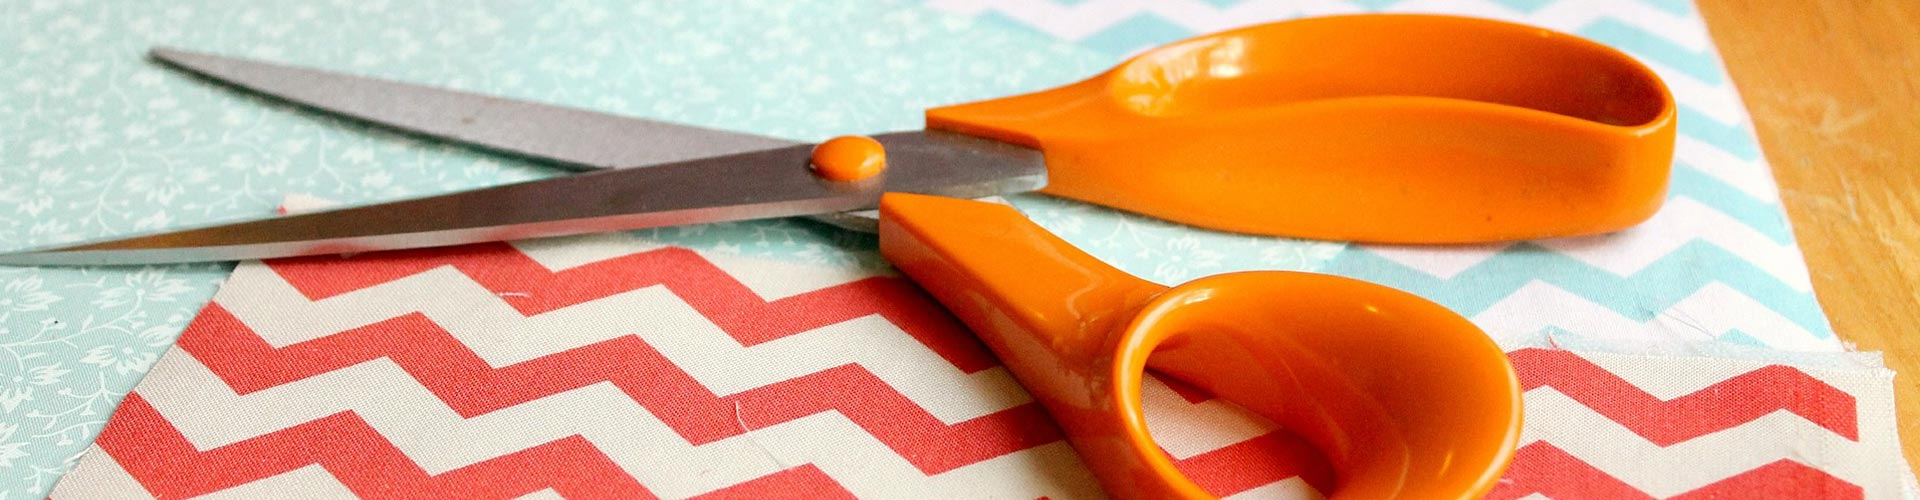 Scissors and Haberdashery Products